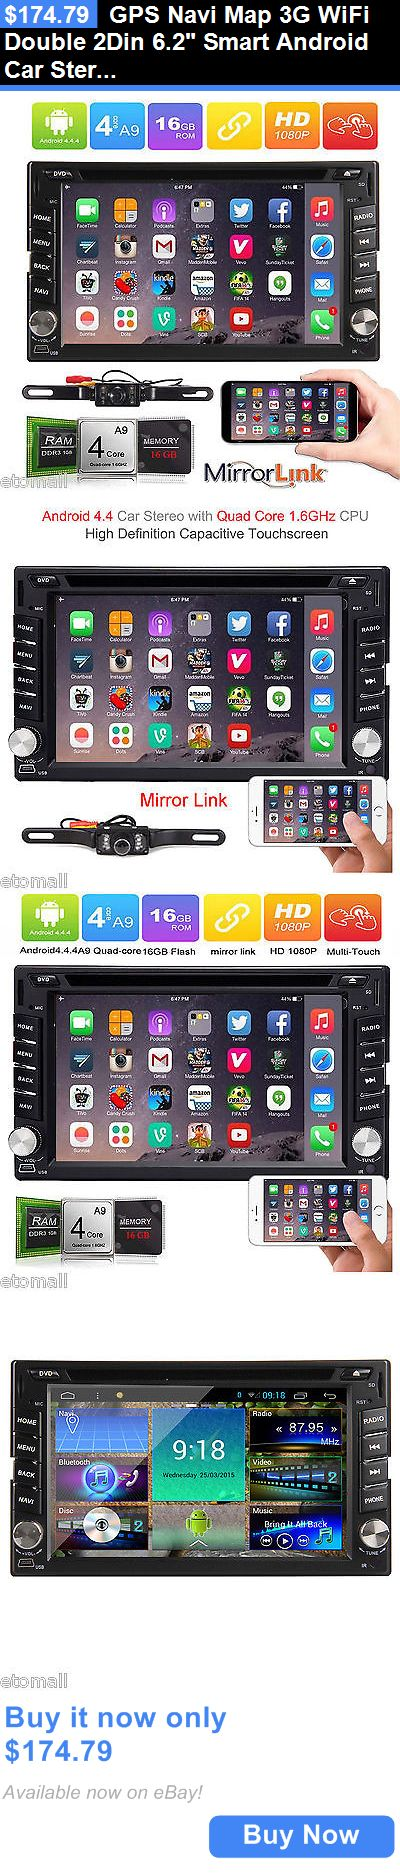 Vehicle Electronics And GPS: Gps Navi Map 3G Wifi Double 2Din 6.2 Smart Android Car Stereo Radio Bluetooth BUY IT NOW ONLY: $174.79